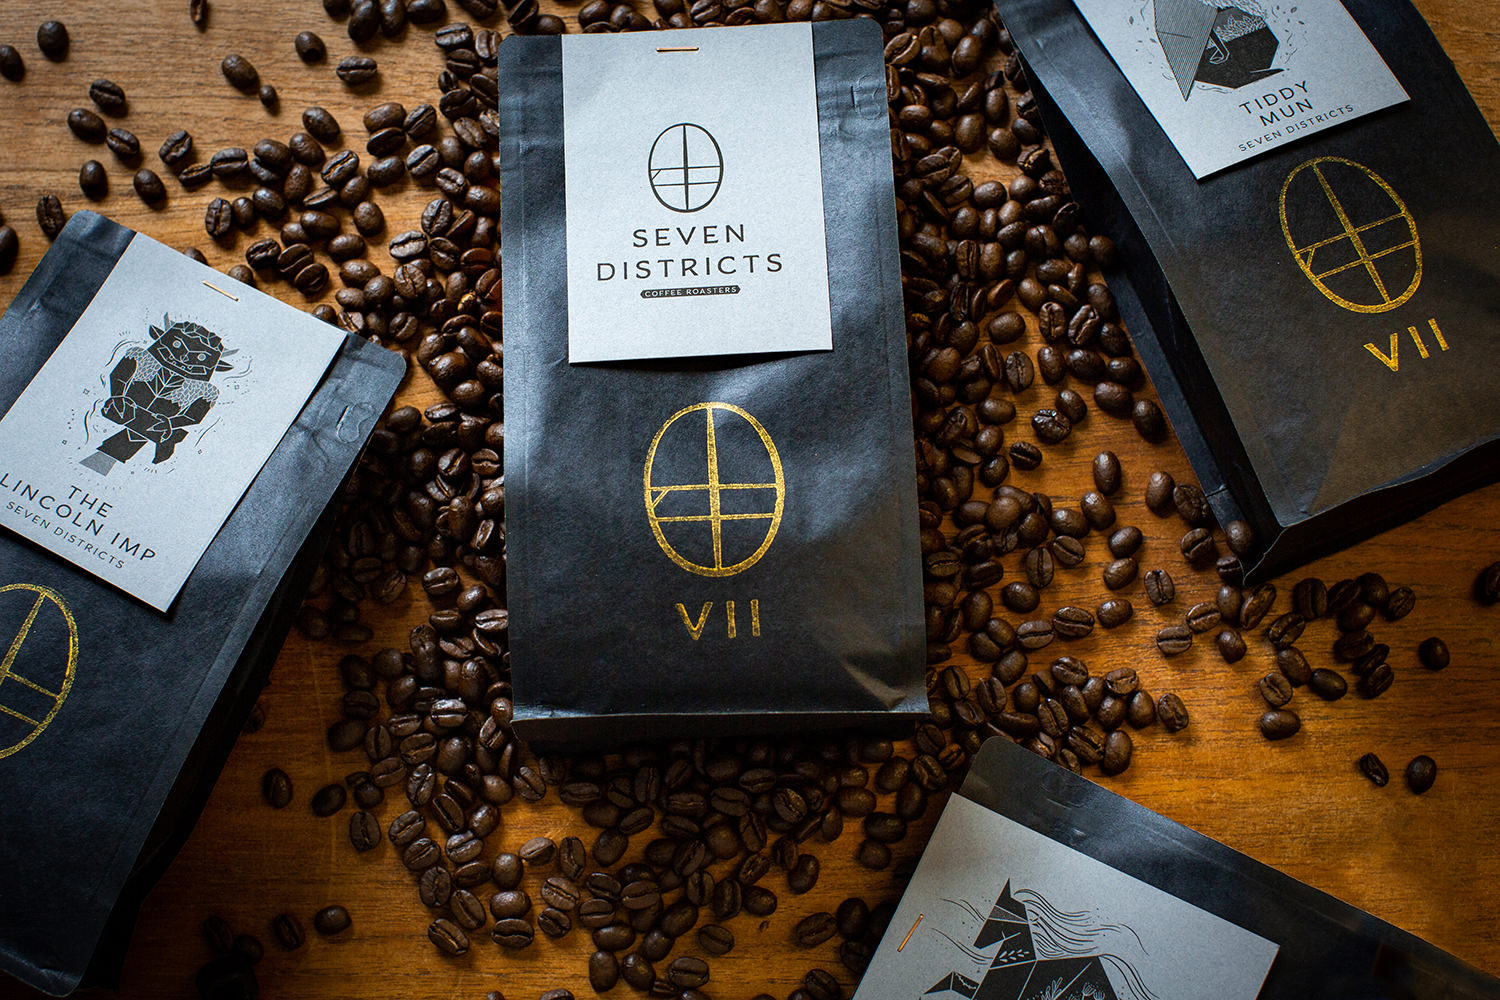 SEVEN DISTRICTS COFFEE ROASTERS